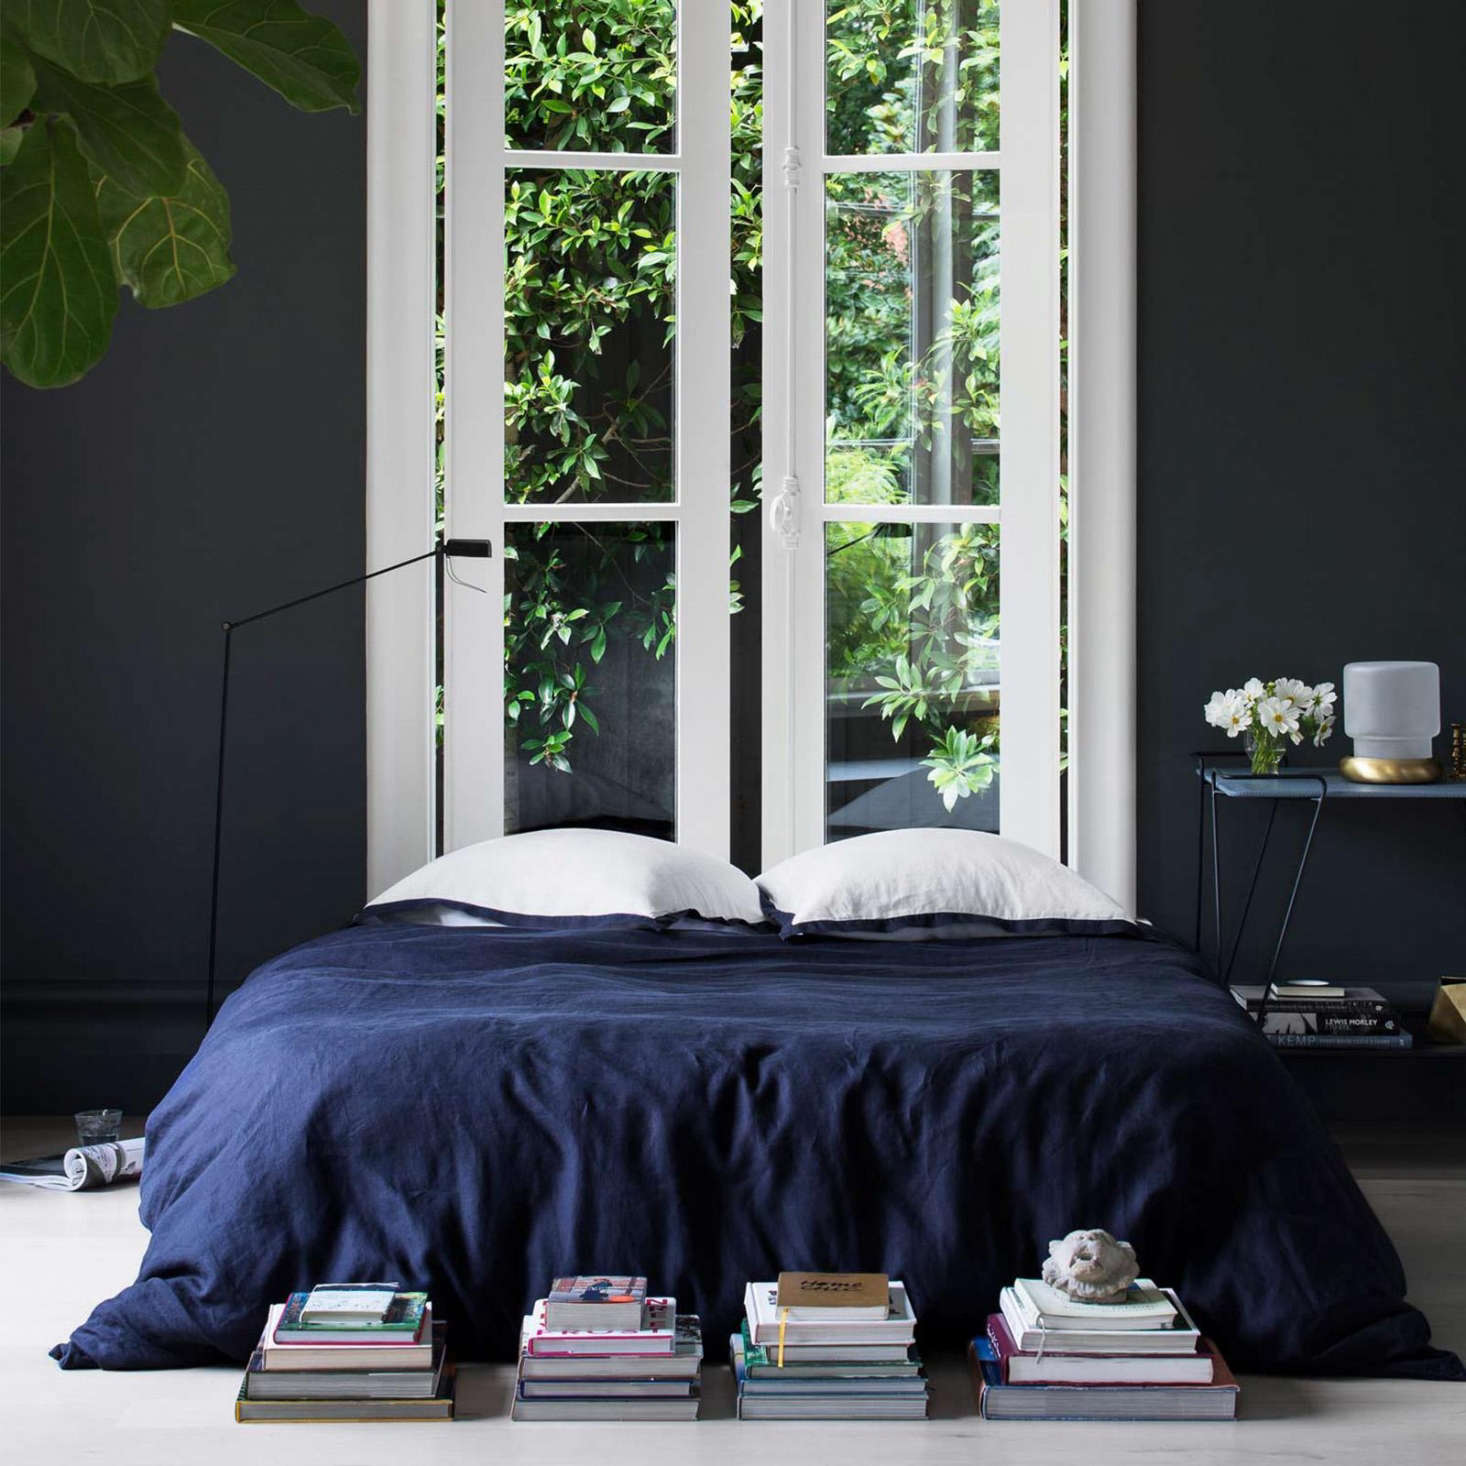 Unique French doors and greenery in a navy bedroom with bedding from Cultiver of Australia a